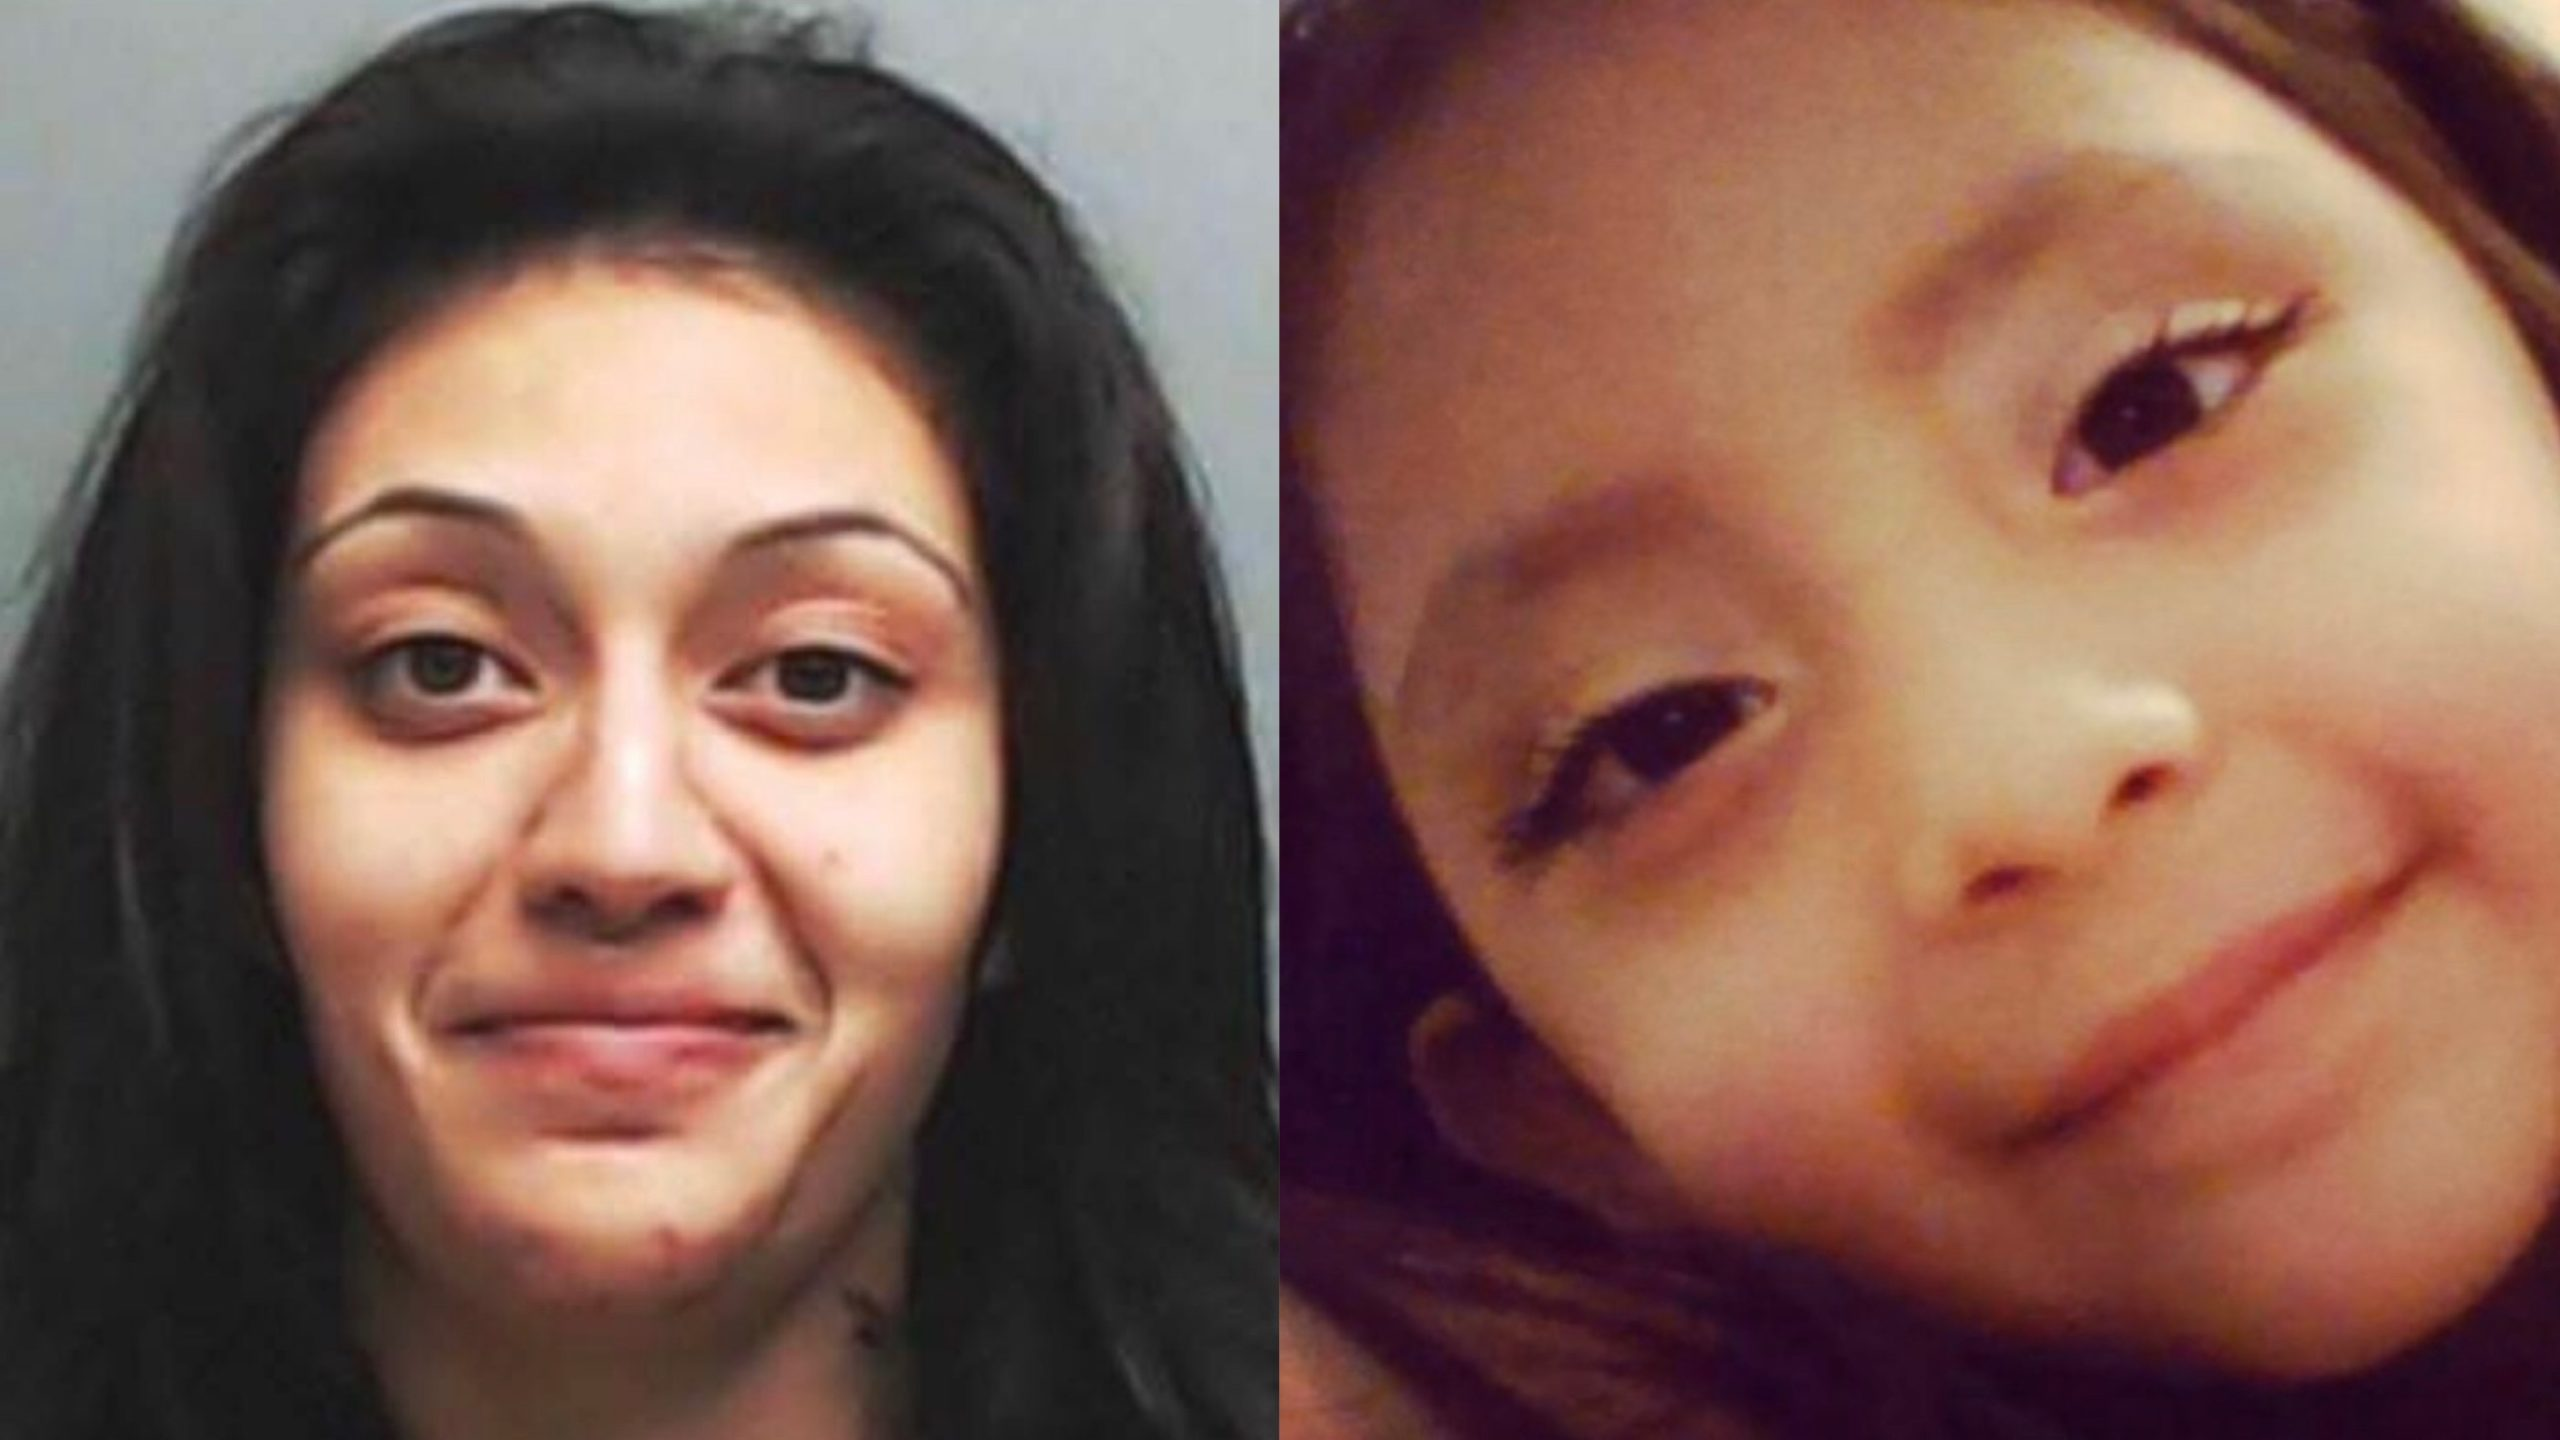 Texas Mom Decapitates Daughter for 'Asking for Cereal,' Is Sentenced to Life